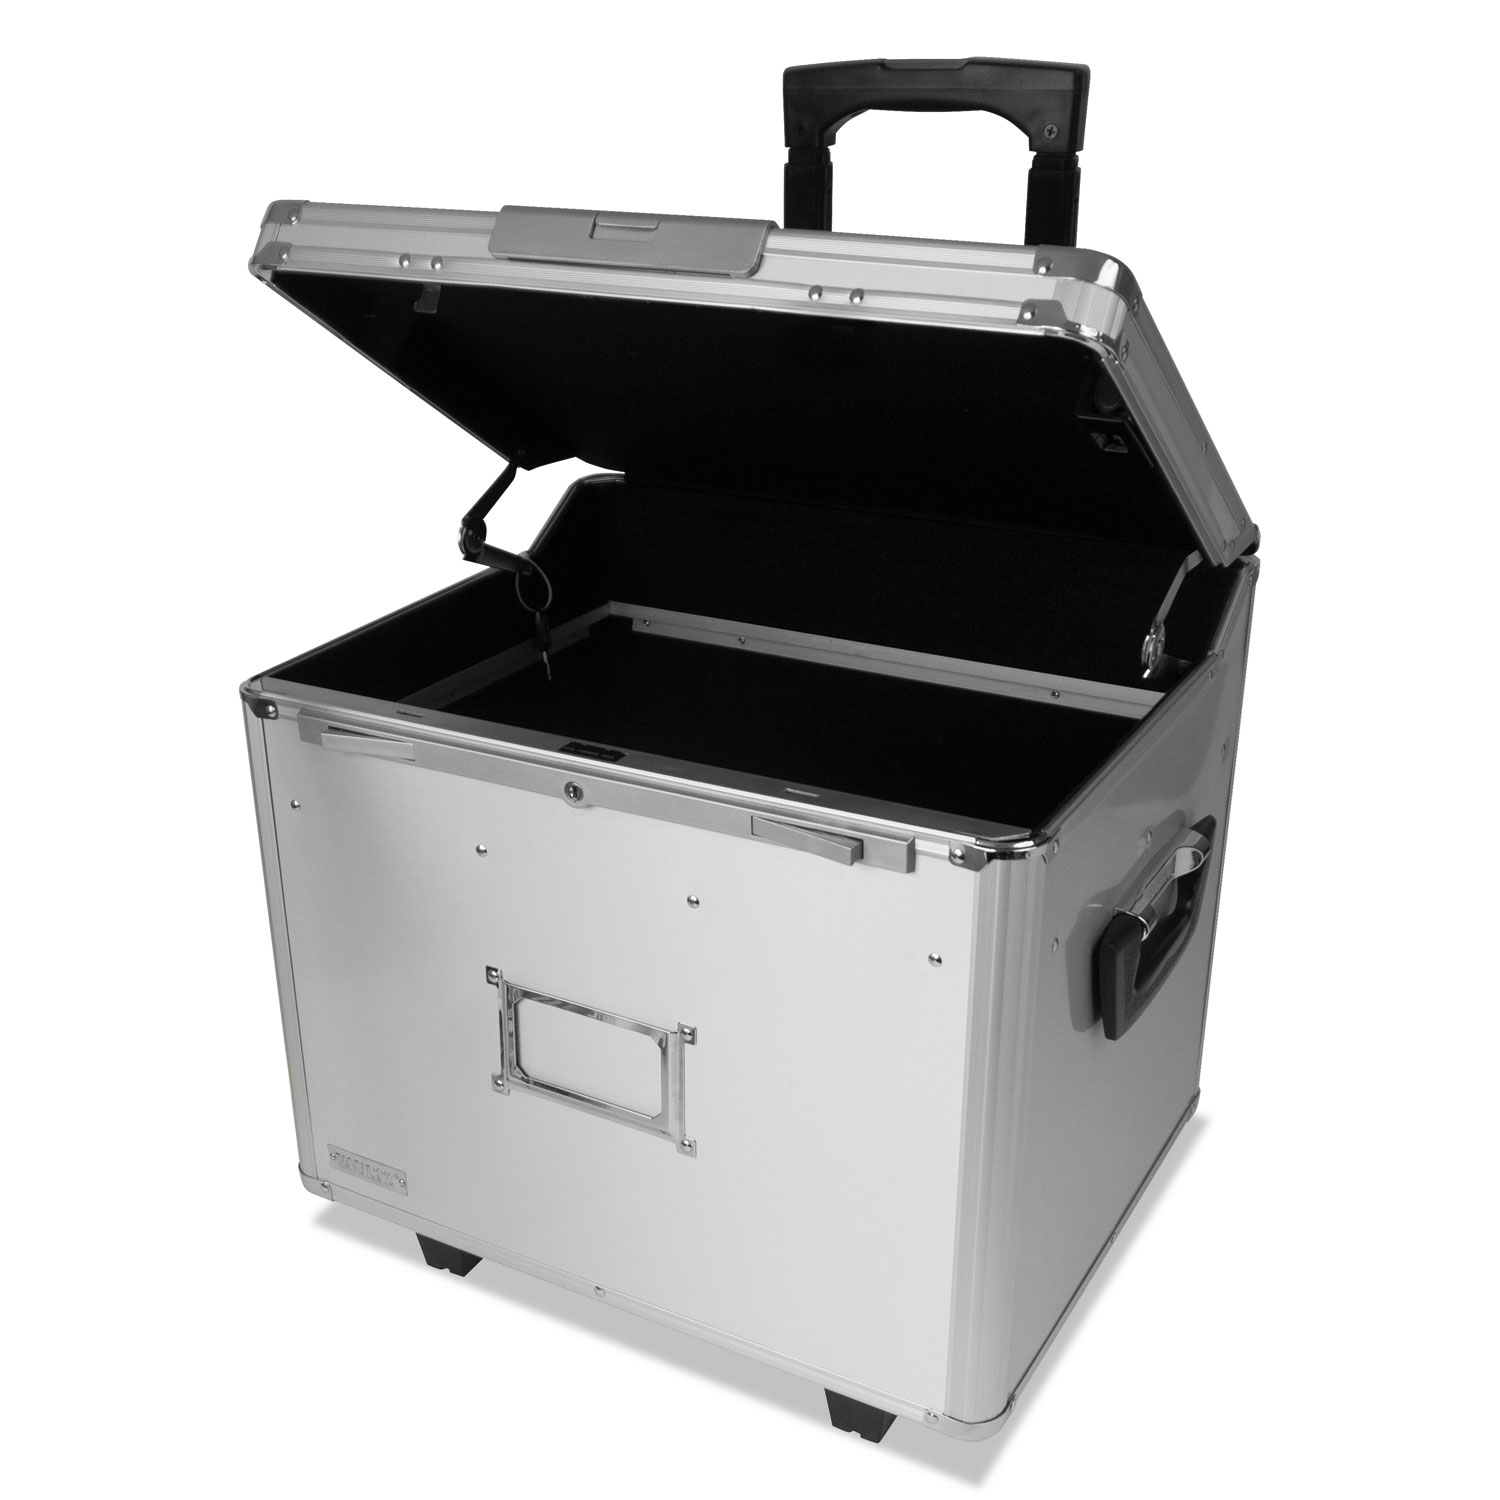 "Locking Mobile File Chest with Electronic Digital Lock, Letter/Legal Files, 14.5"" x 16.25"" x 14.25"", Silver"